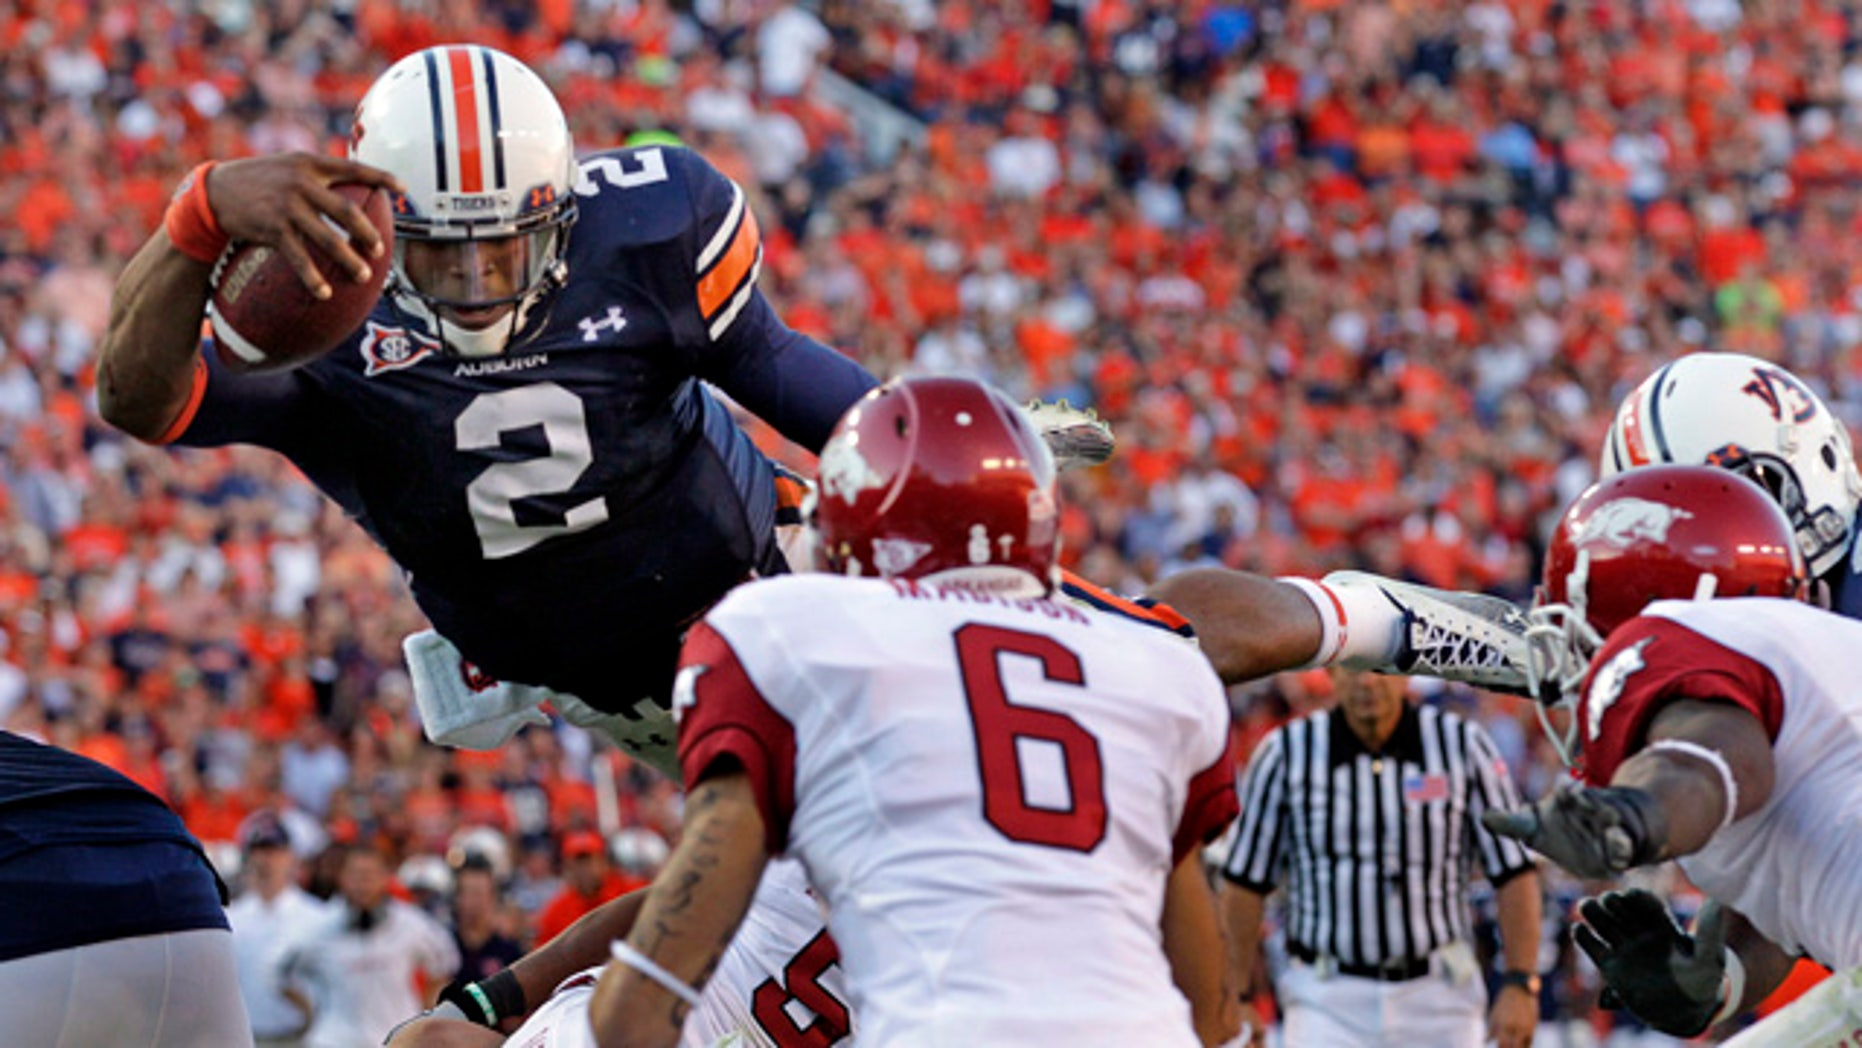 Oct. 16: Auburn quarterback Cameron Newton (2) diving in on for a one-yard touchdown run as Arkansas' Isaac Madison (6) defends during the second half of an NCAA college football game in Auburn, Ala. The Heisman Trophy-winner added AP Player of the Year to his collection of honor on Dec. 22. (AP)